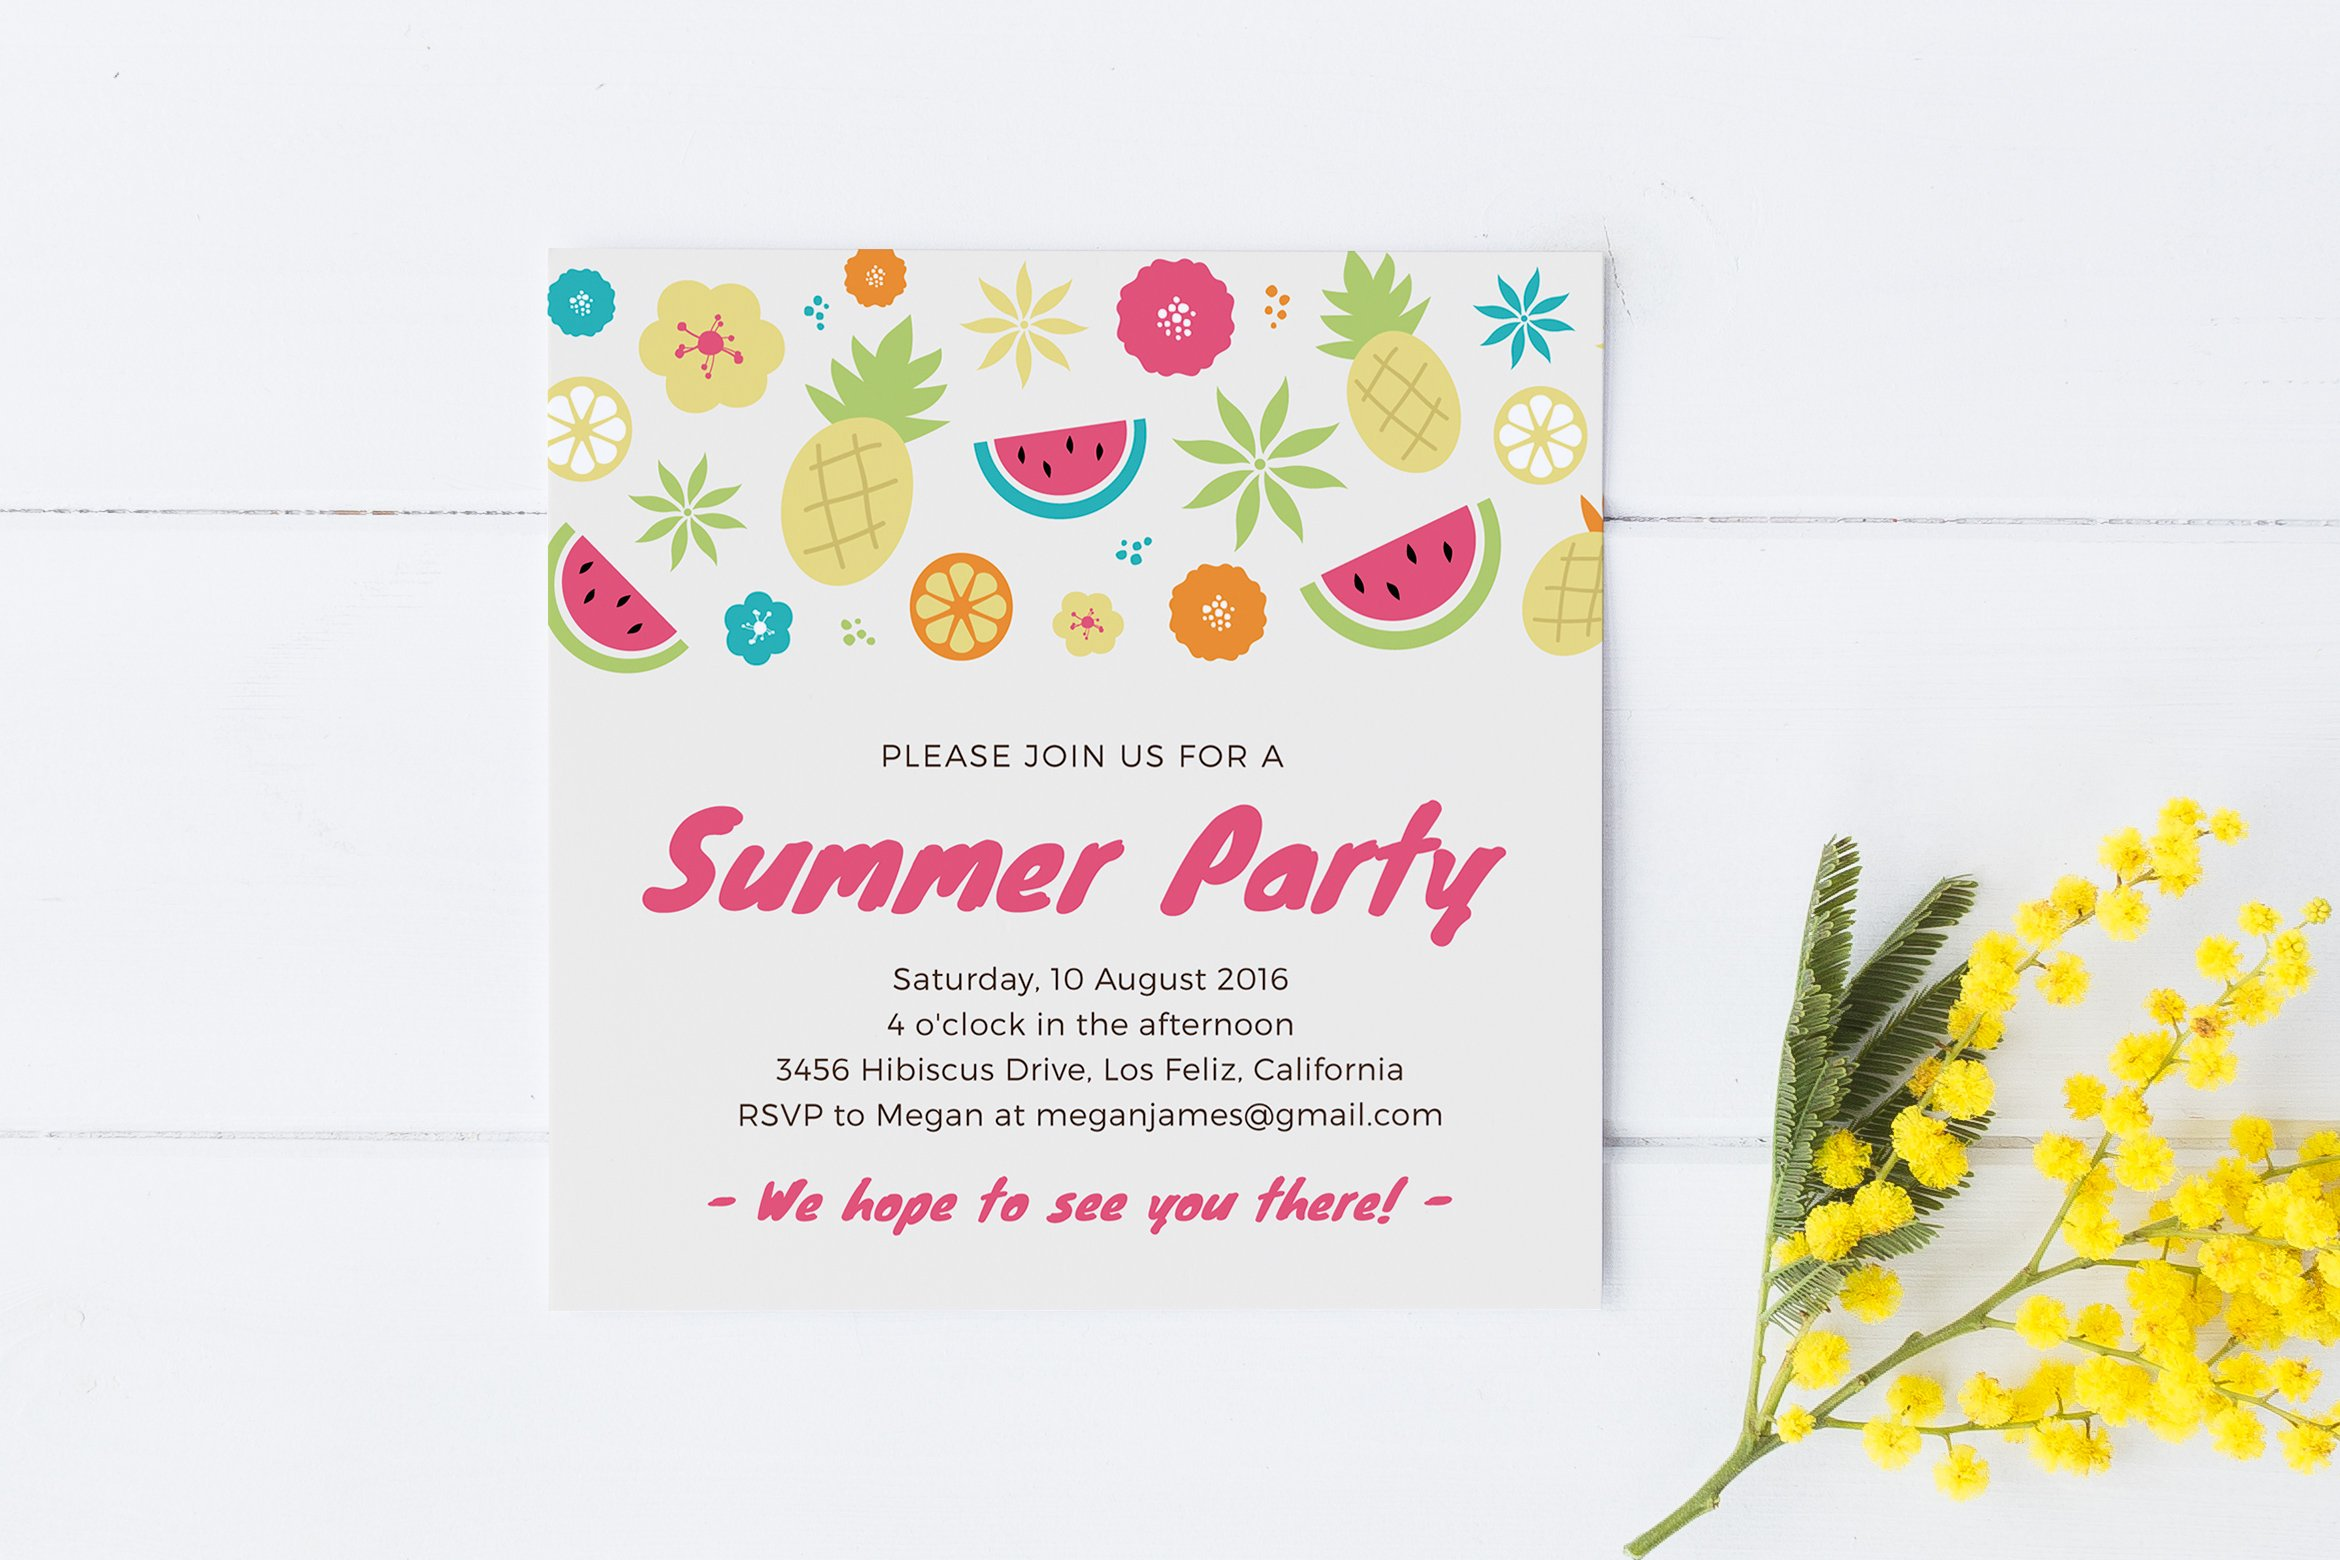 doc 420420 summer party invitation template summer invitations summer party invitation template invitation templates on summer party invitation template